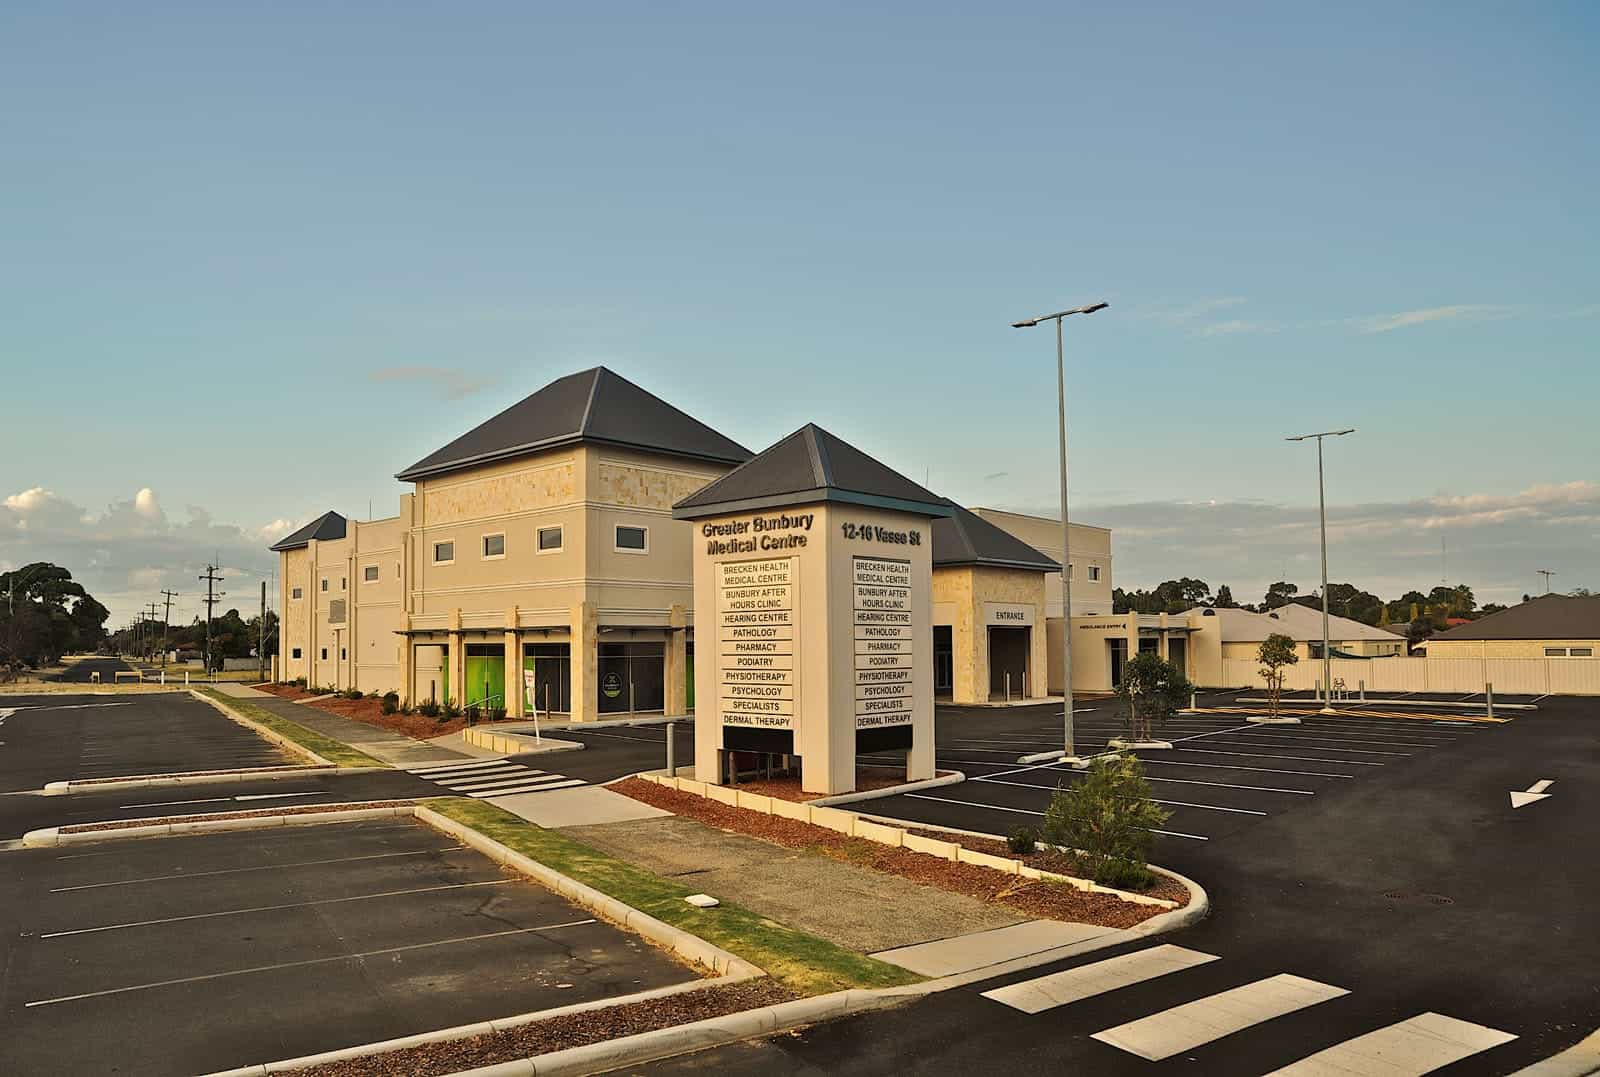 Greater Bunbury Medical Centre